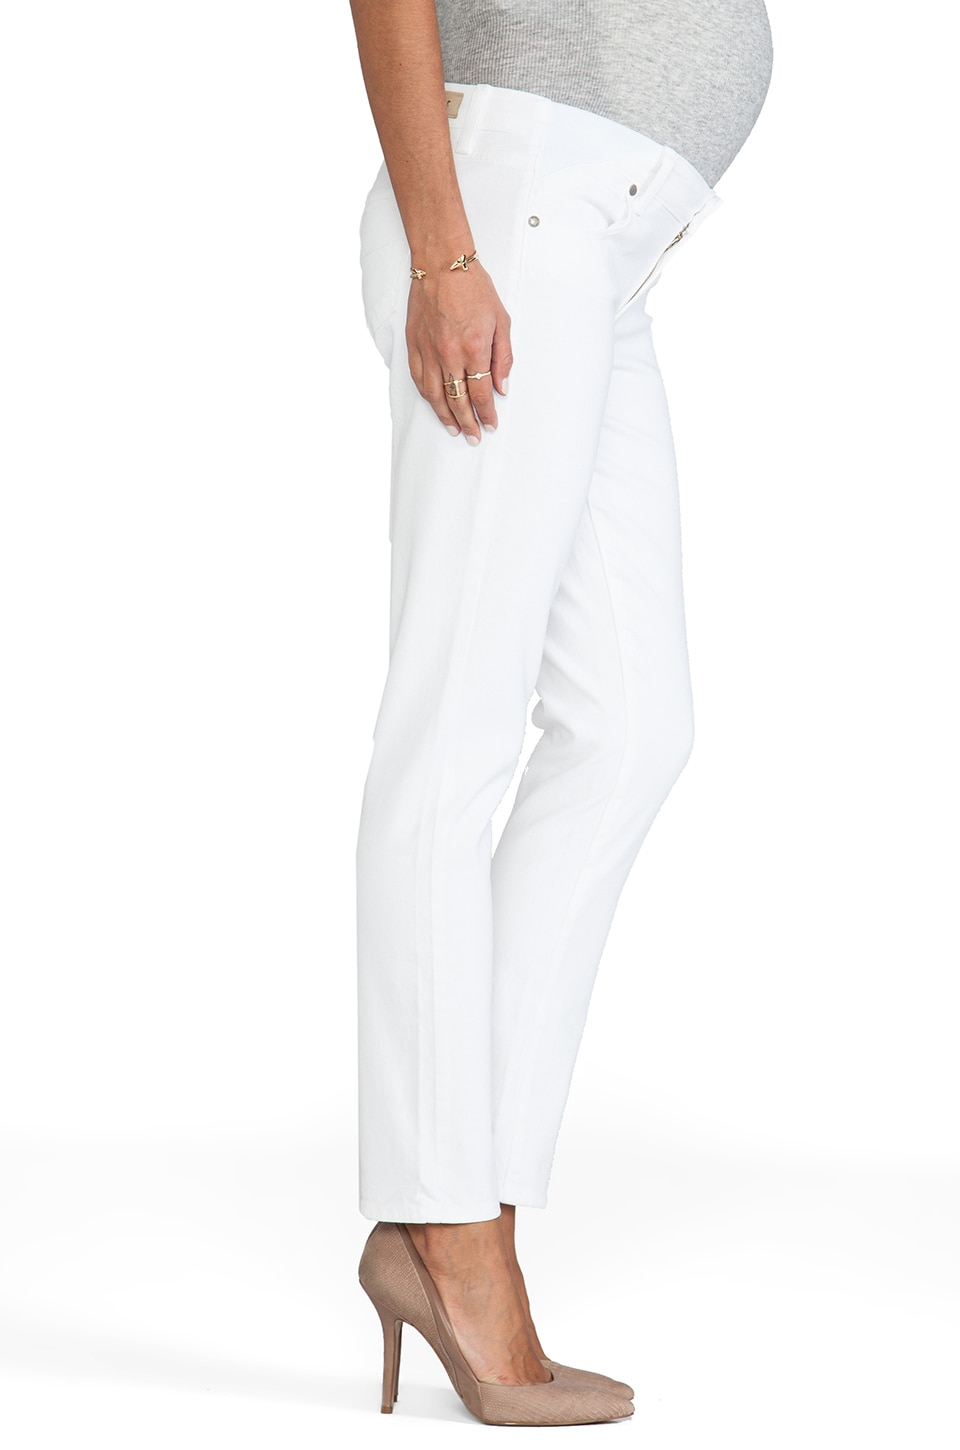 Paige Denim Skyline Ankle Peg Maternity in Optic White